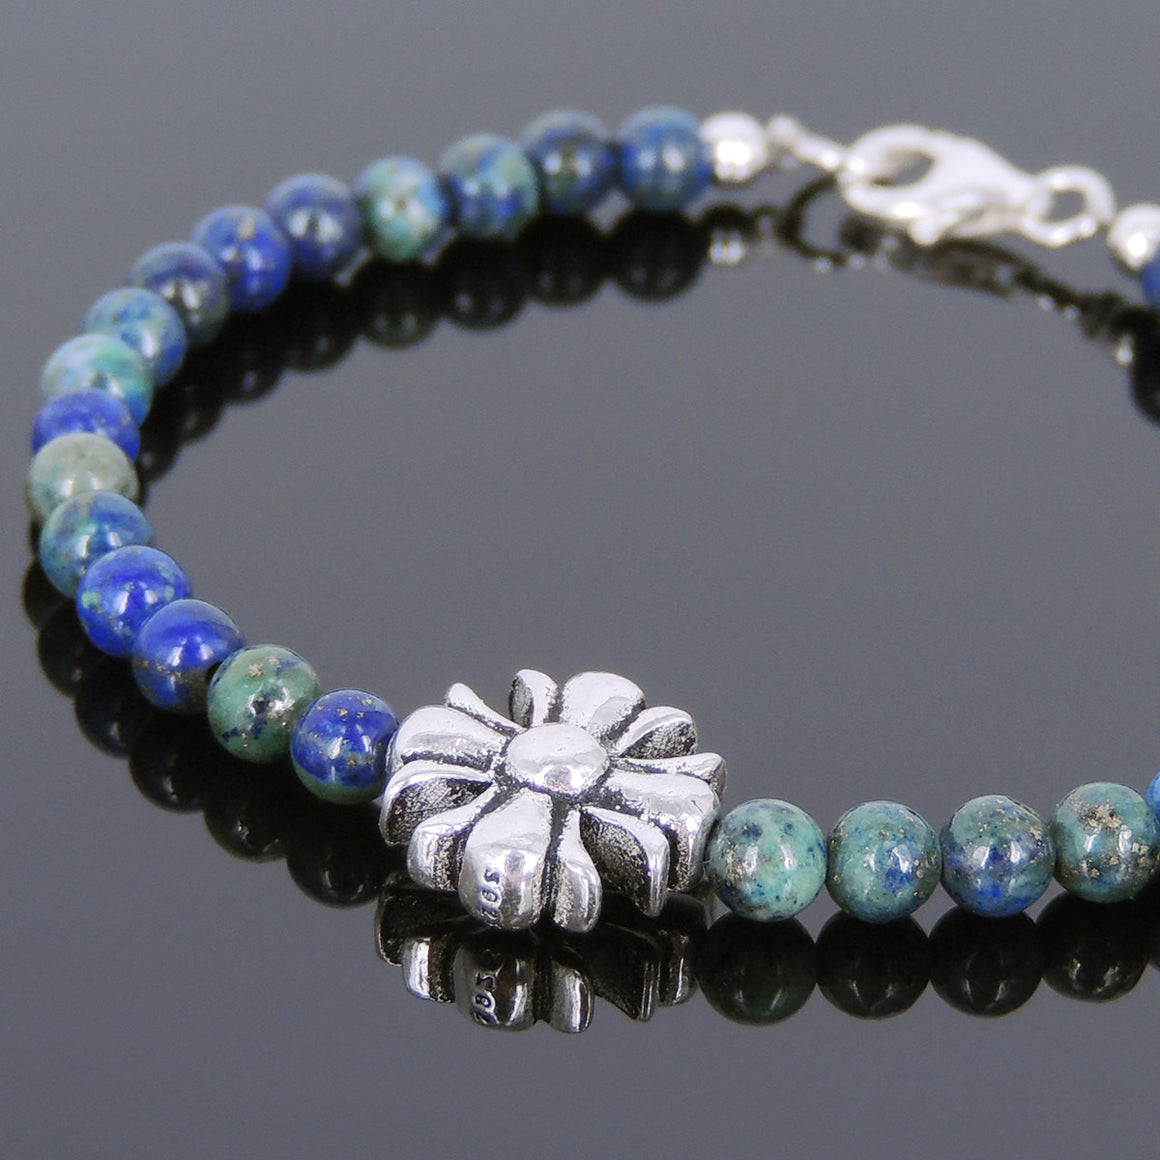 4mm Mixed Chrysocolla Lapis Healing Gemstone Bracelet with S925 Sterling Silver Cross Charm - Handmade by Gem & Silver BR600